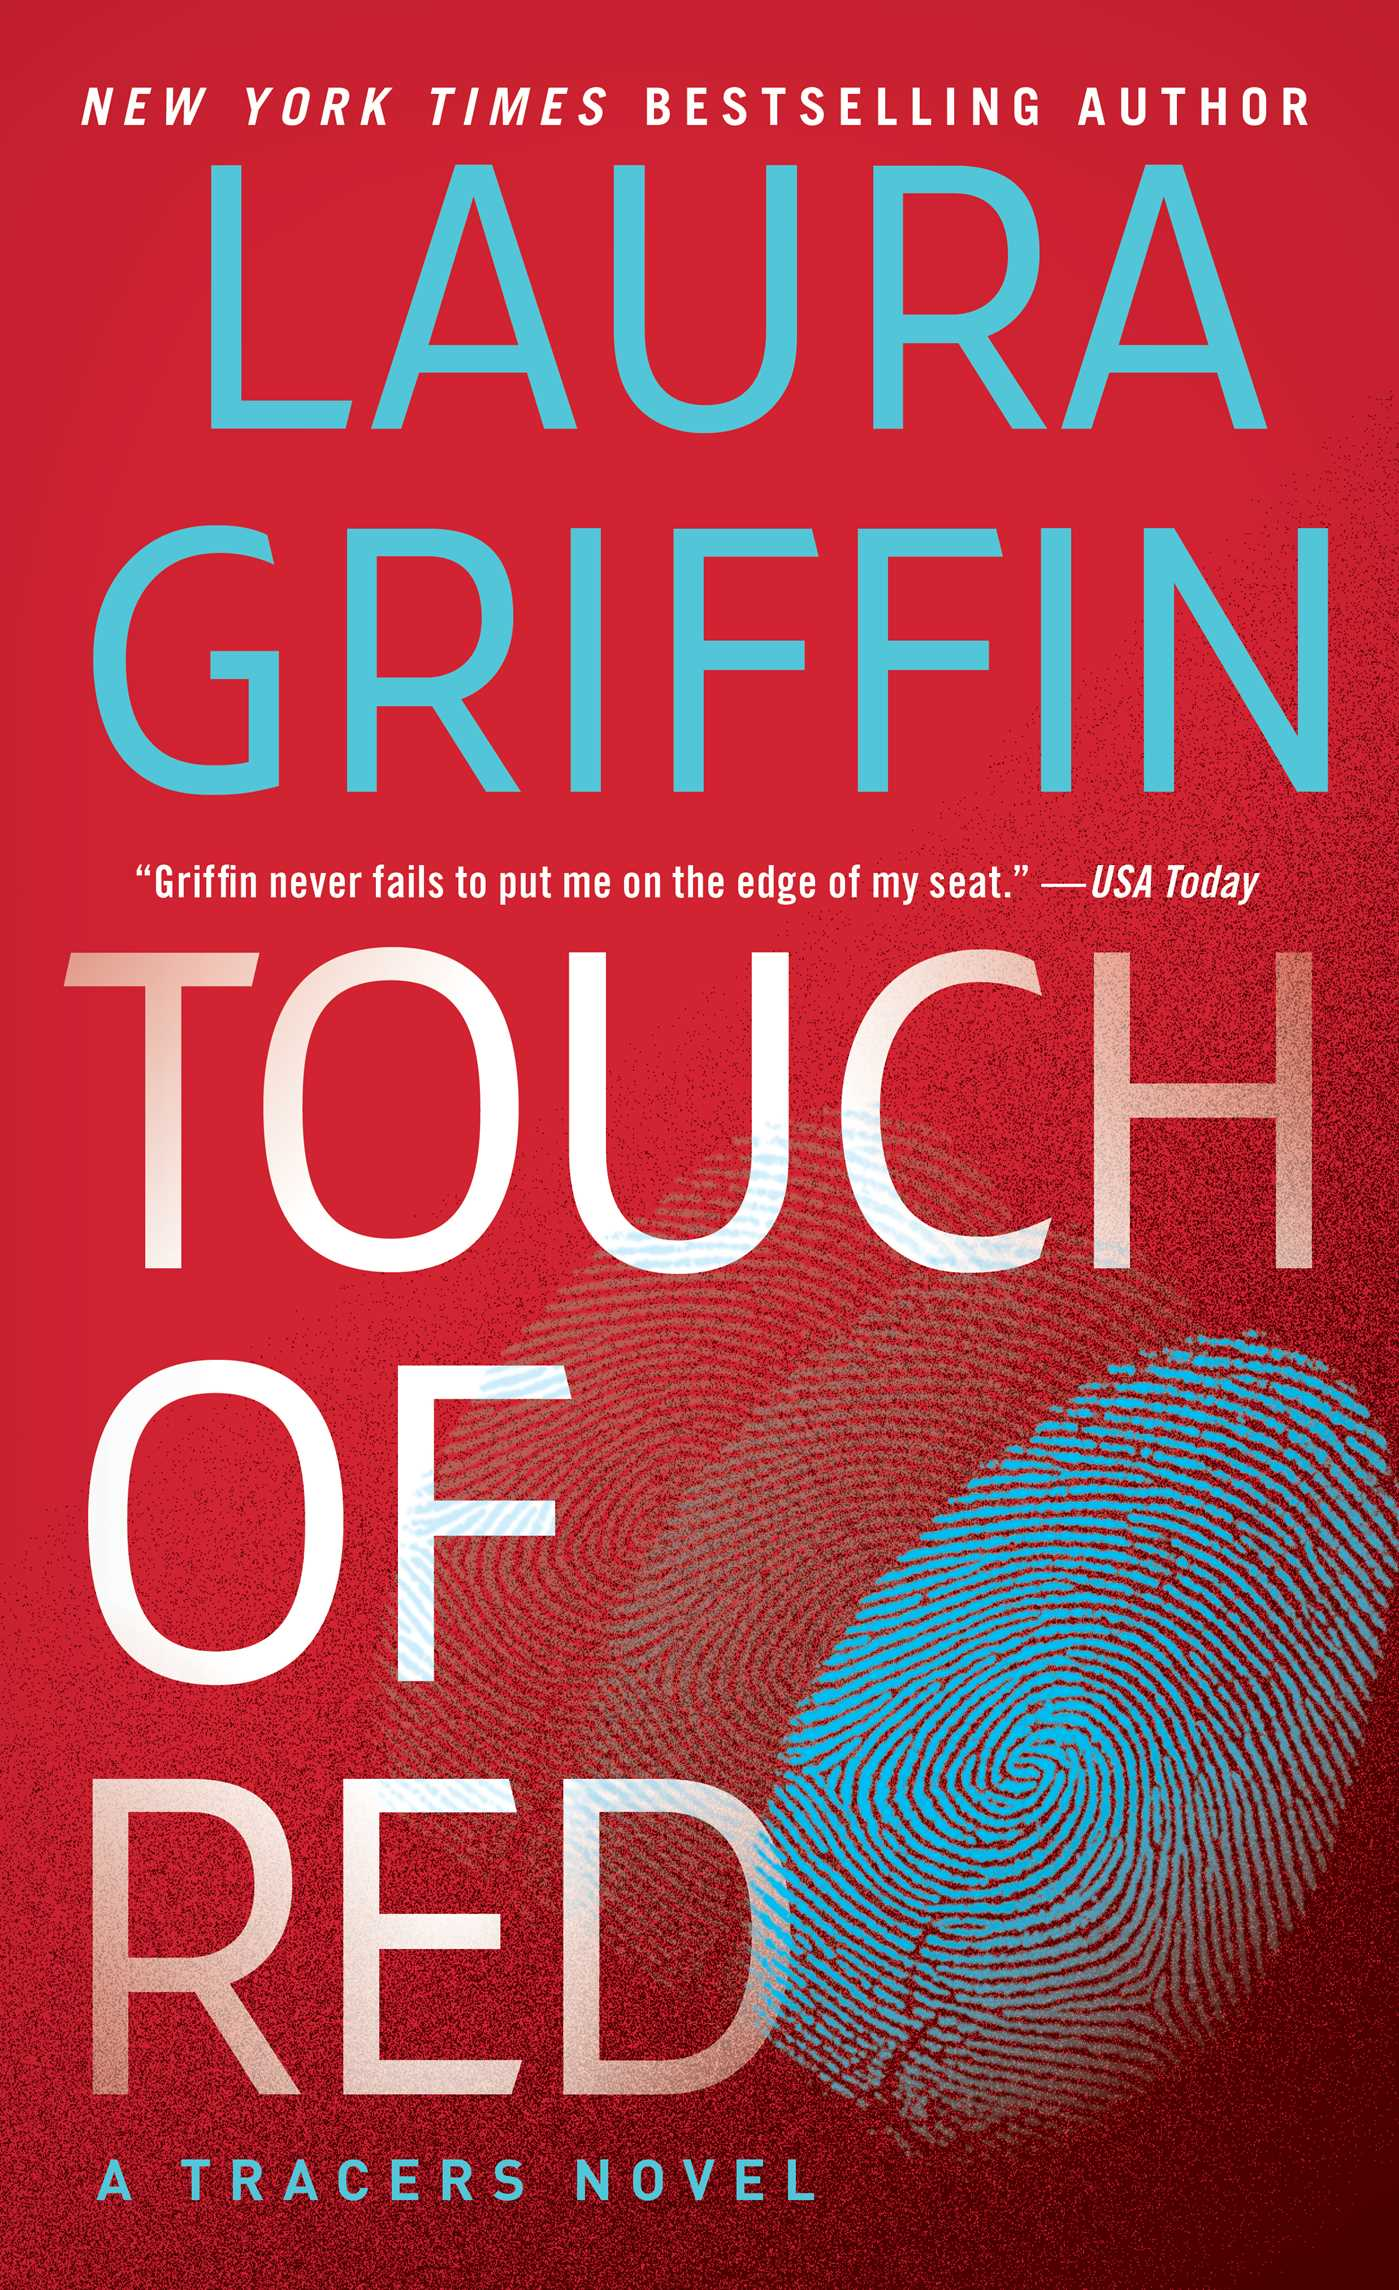 Image result for blue and red book cover